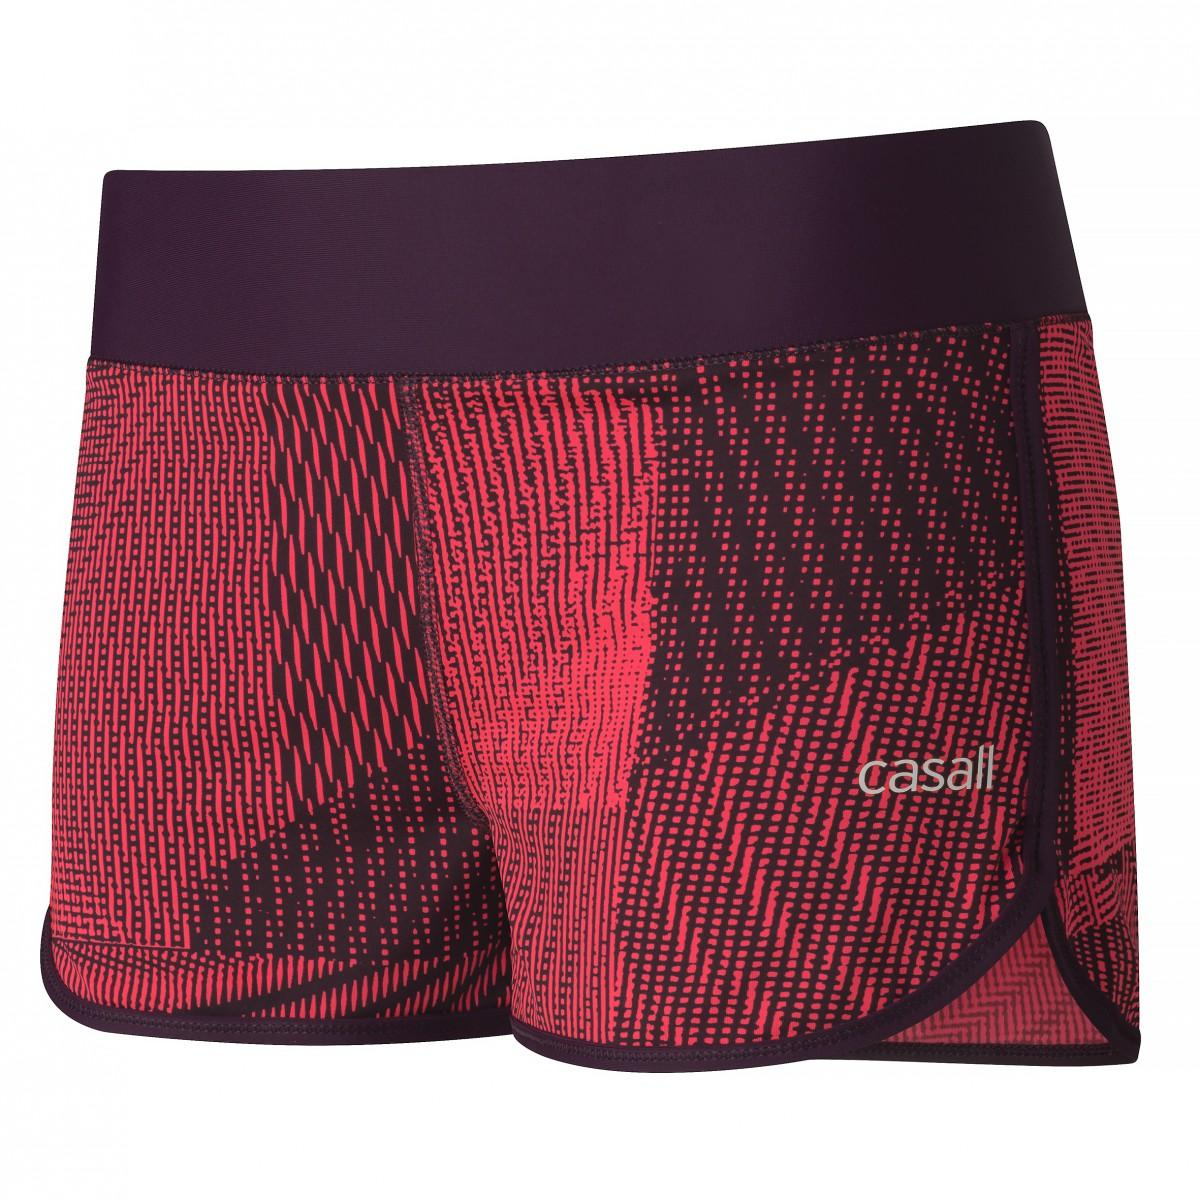 Casall Shifting Shorts